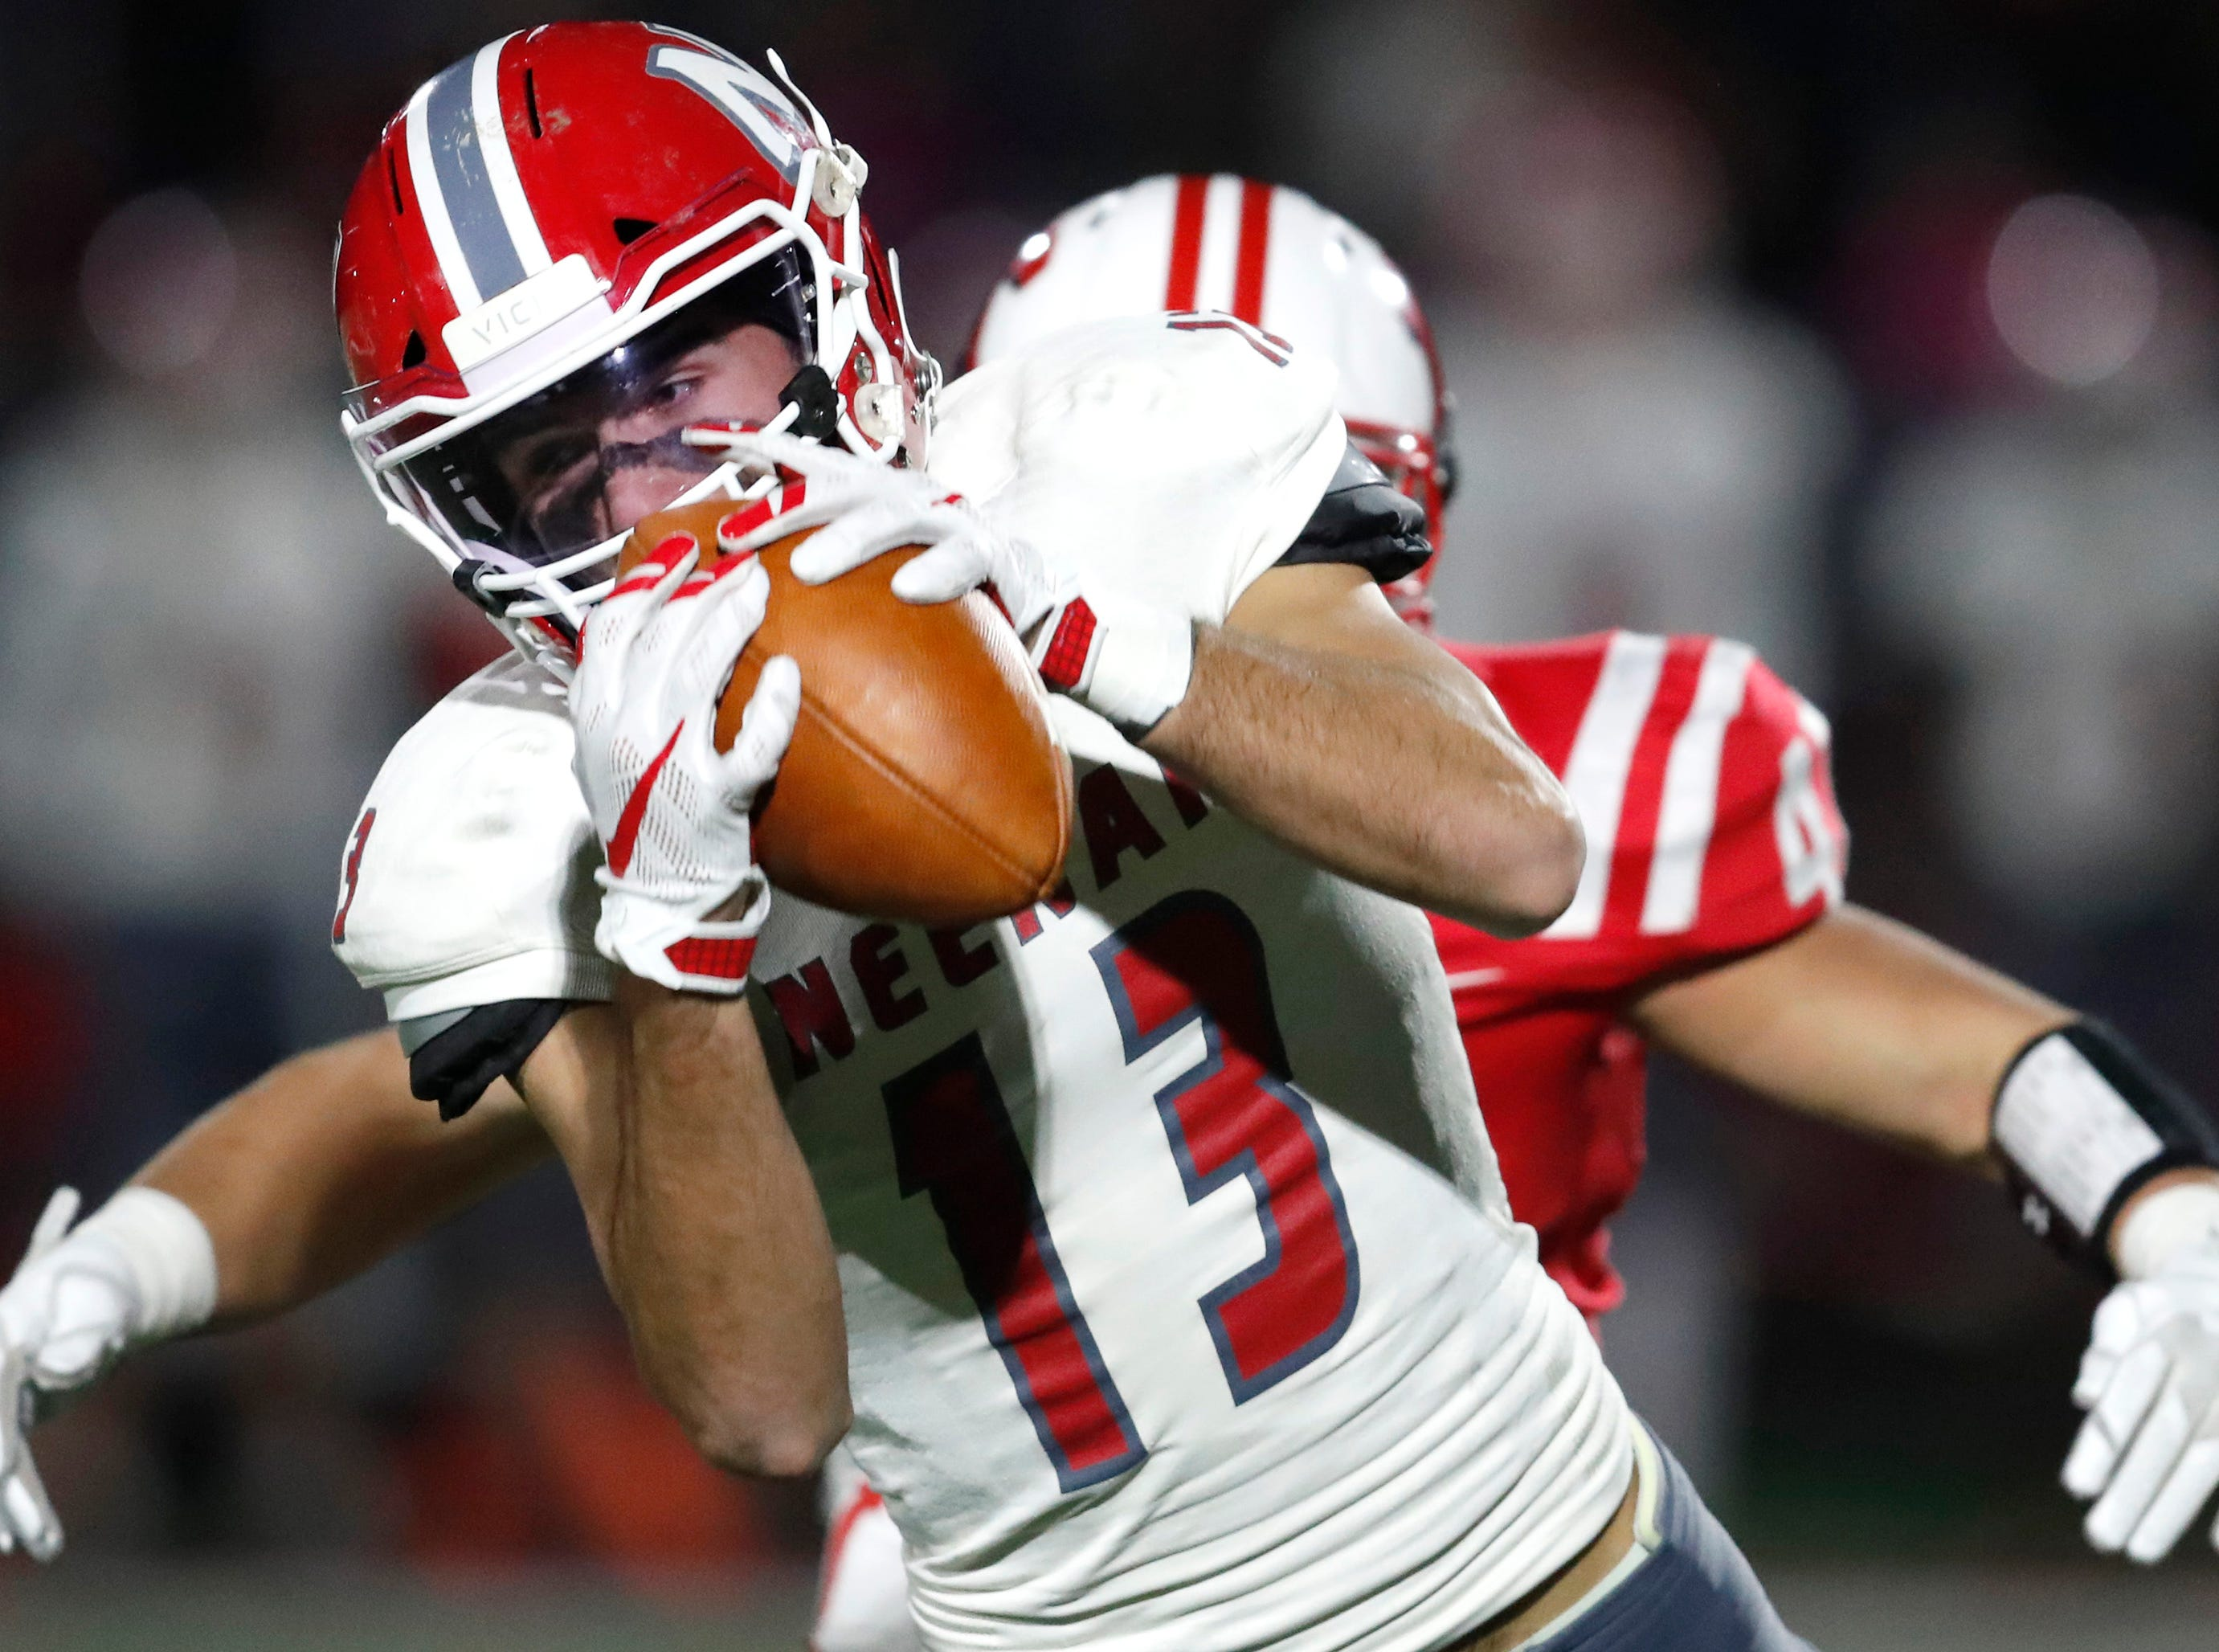 Neenah High School's Logan Morrow makes a catch against Kimberly High School during their round 2 playoff game Friday, Oct. 26, 2018, in Kimberly, Wis.